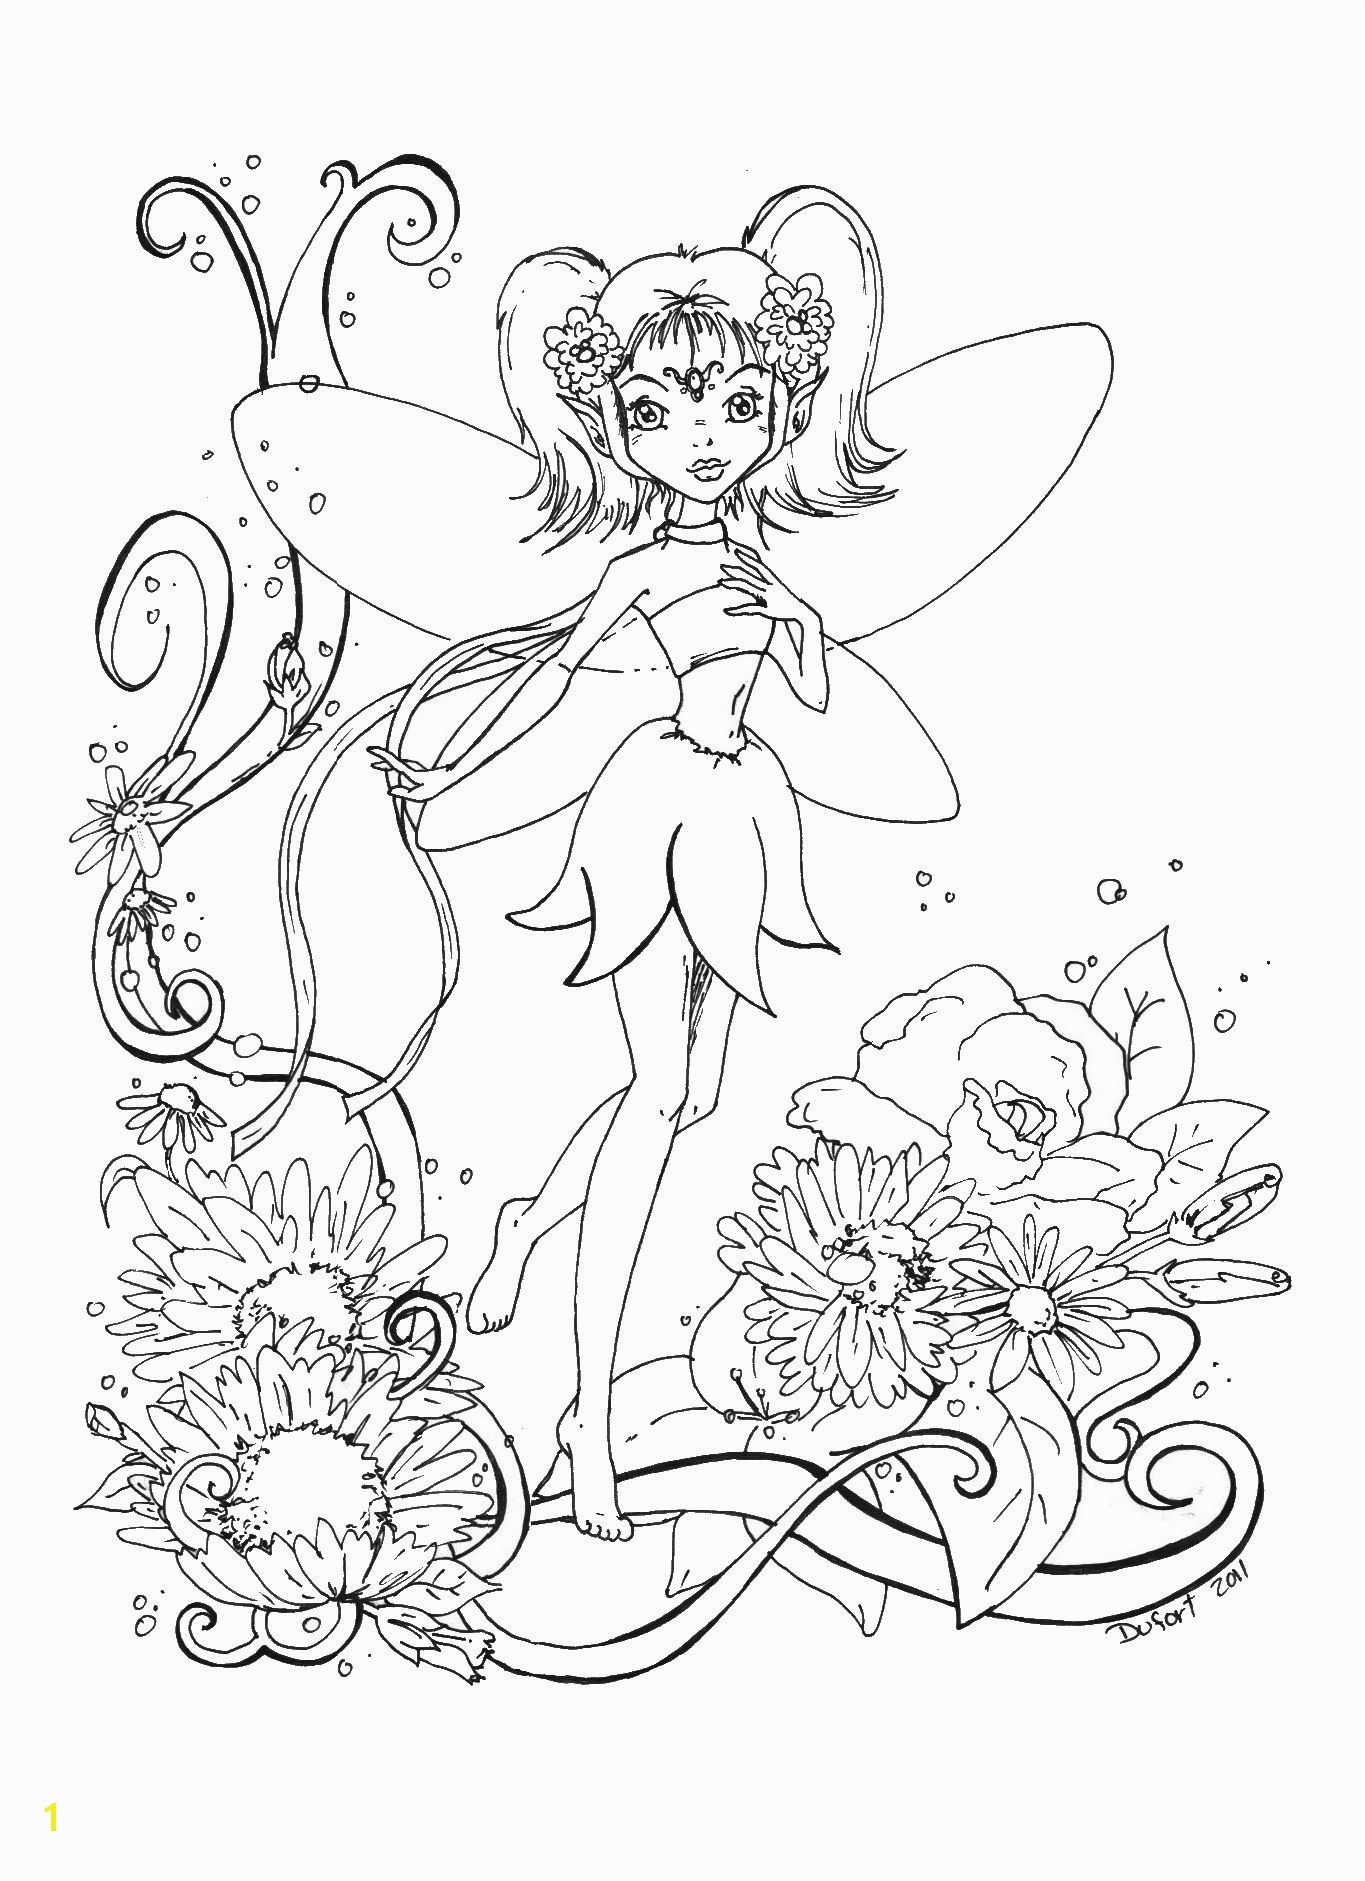 Fairy Coloring Pages For Kids Fresh Realistic Fairy Coloring Pages For Adults Coloring Pages